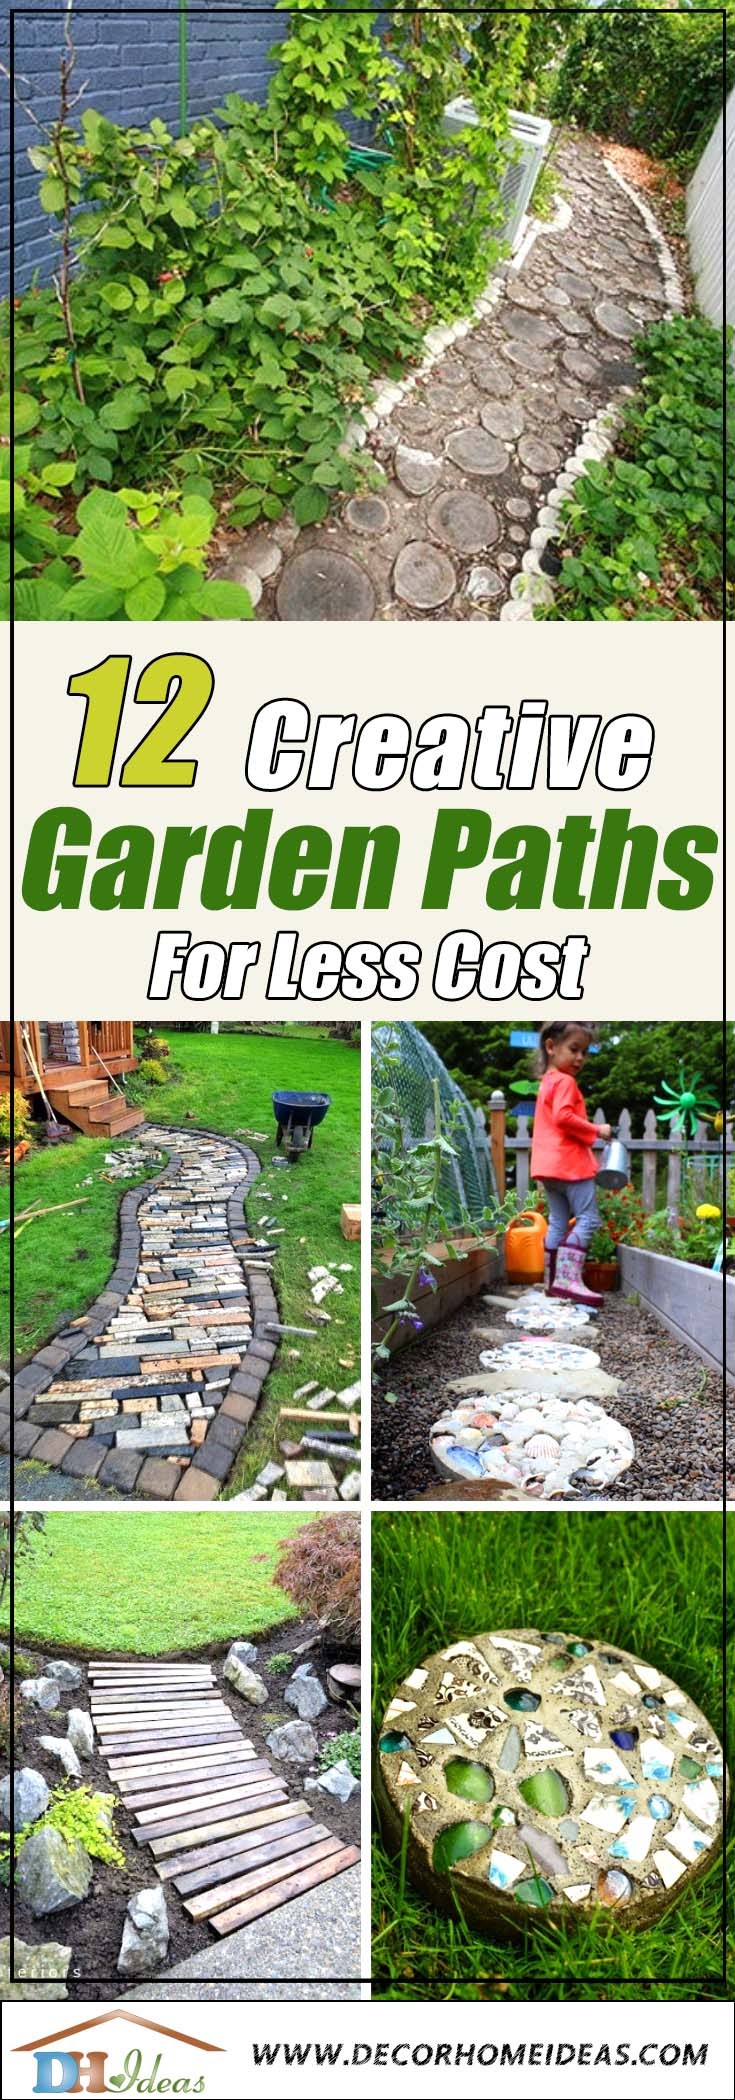 12 Creative Garden Paths For Less Cost You Might Expect | Amazing garden pathways made of stones and rocks #gardens #gardening #diy #gardenideas #gardeningtips #decorhomeideas